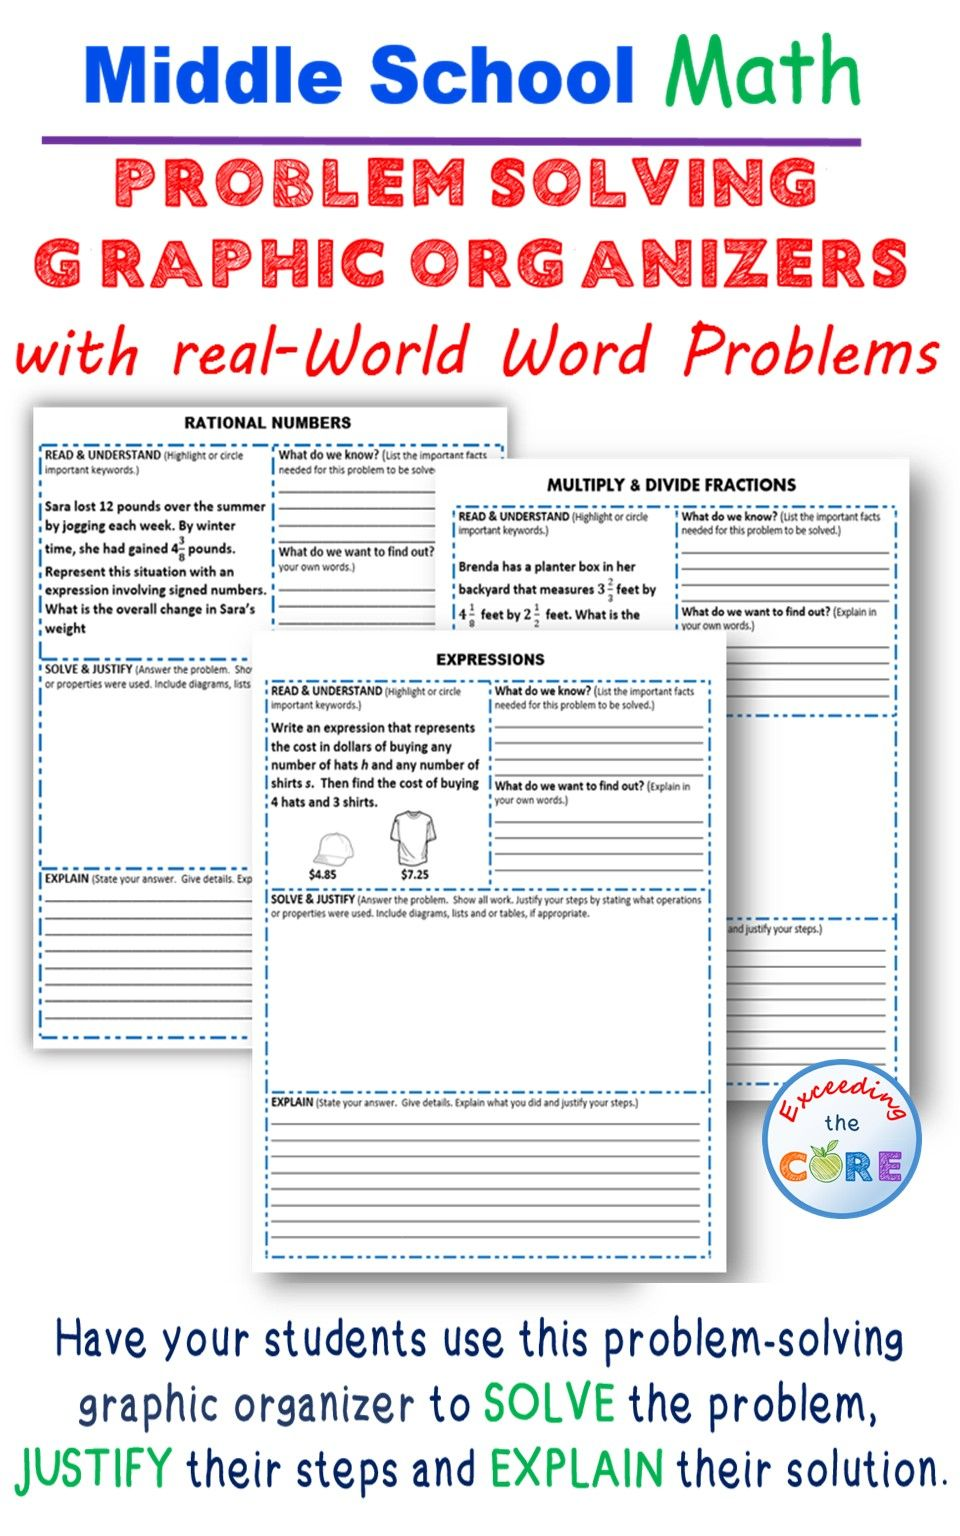 problem solving with graphic organizers | secondary math resources